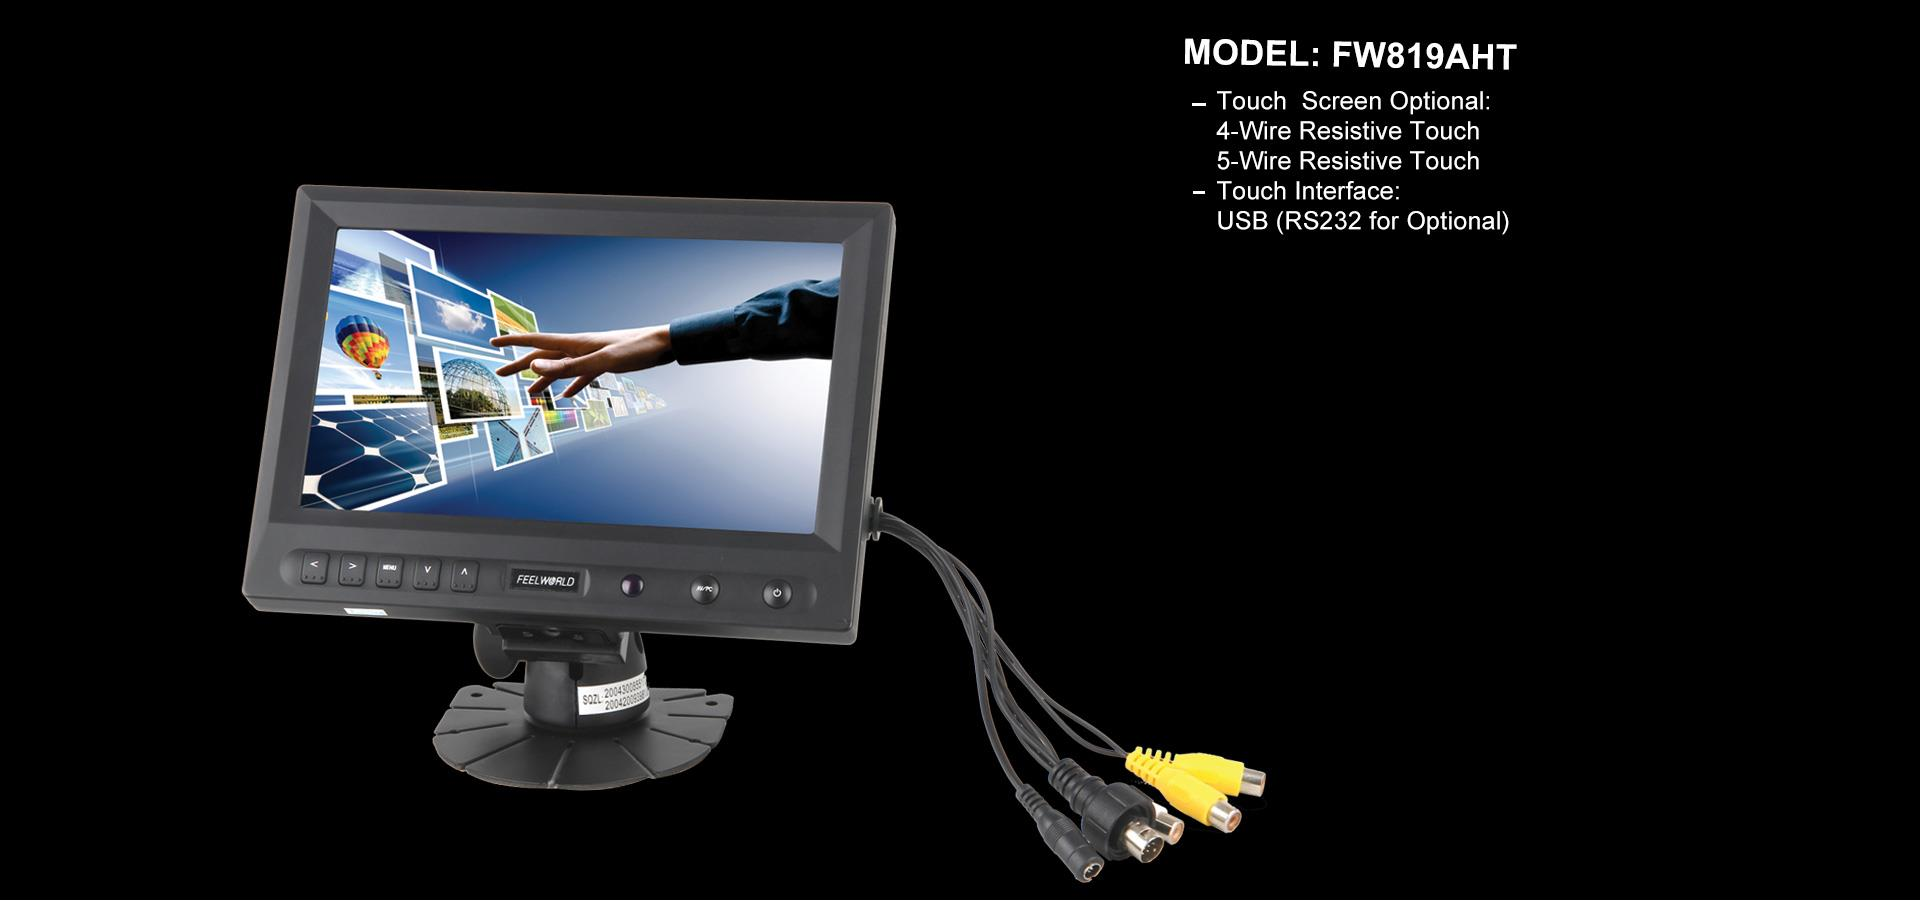 8 800x480 Tft Lcd Touch Monitor With Hdmivgavideoaudiodvi Wiring Fw819aht Is A Inch It Use High Quality New Panel Resolution 300 450cd M Brightness And 70 70l R